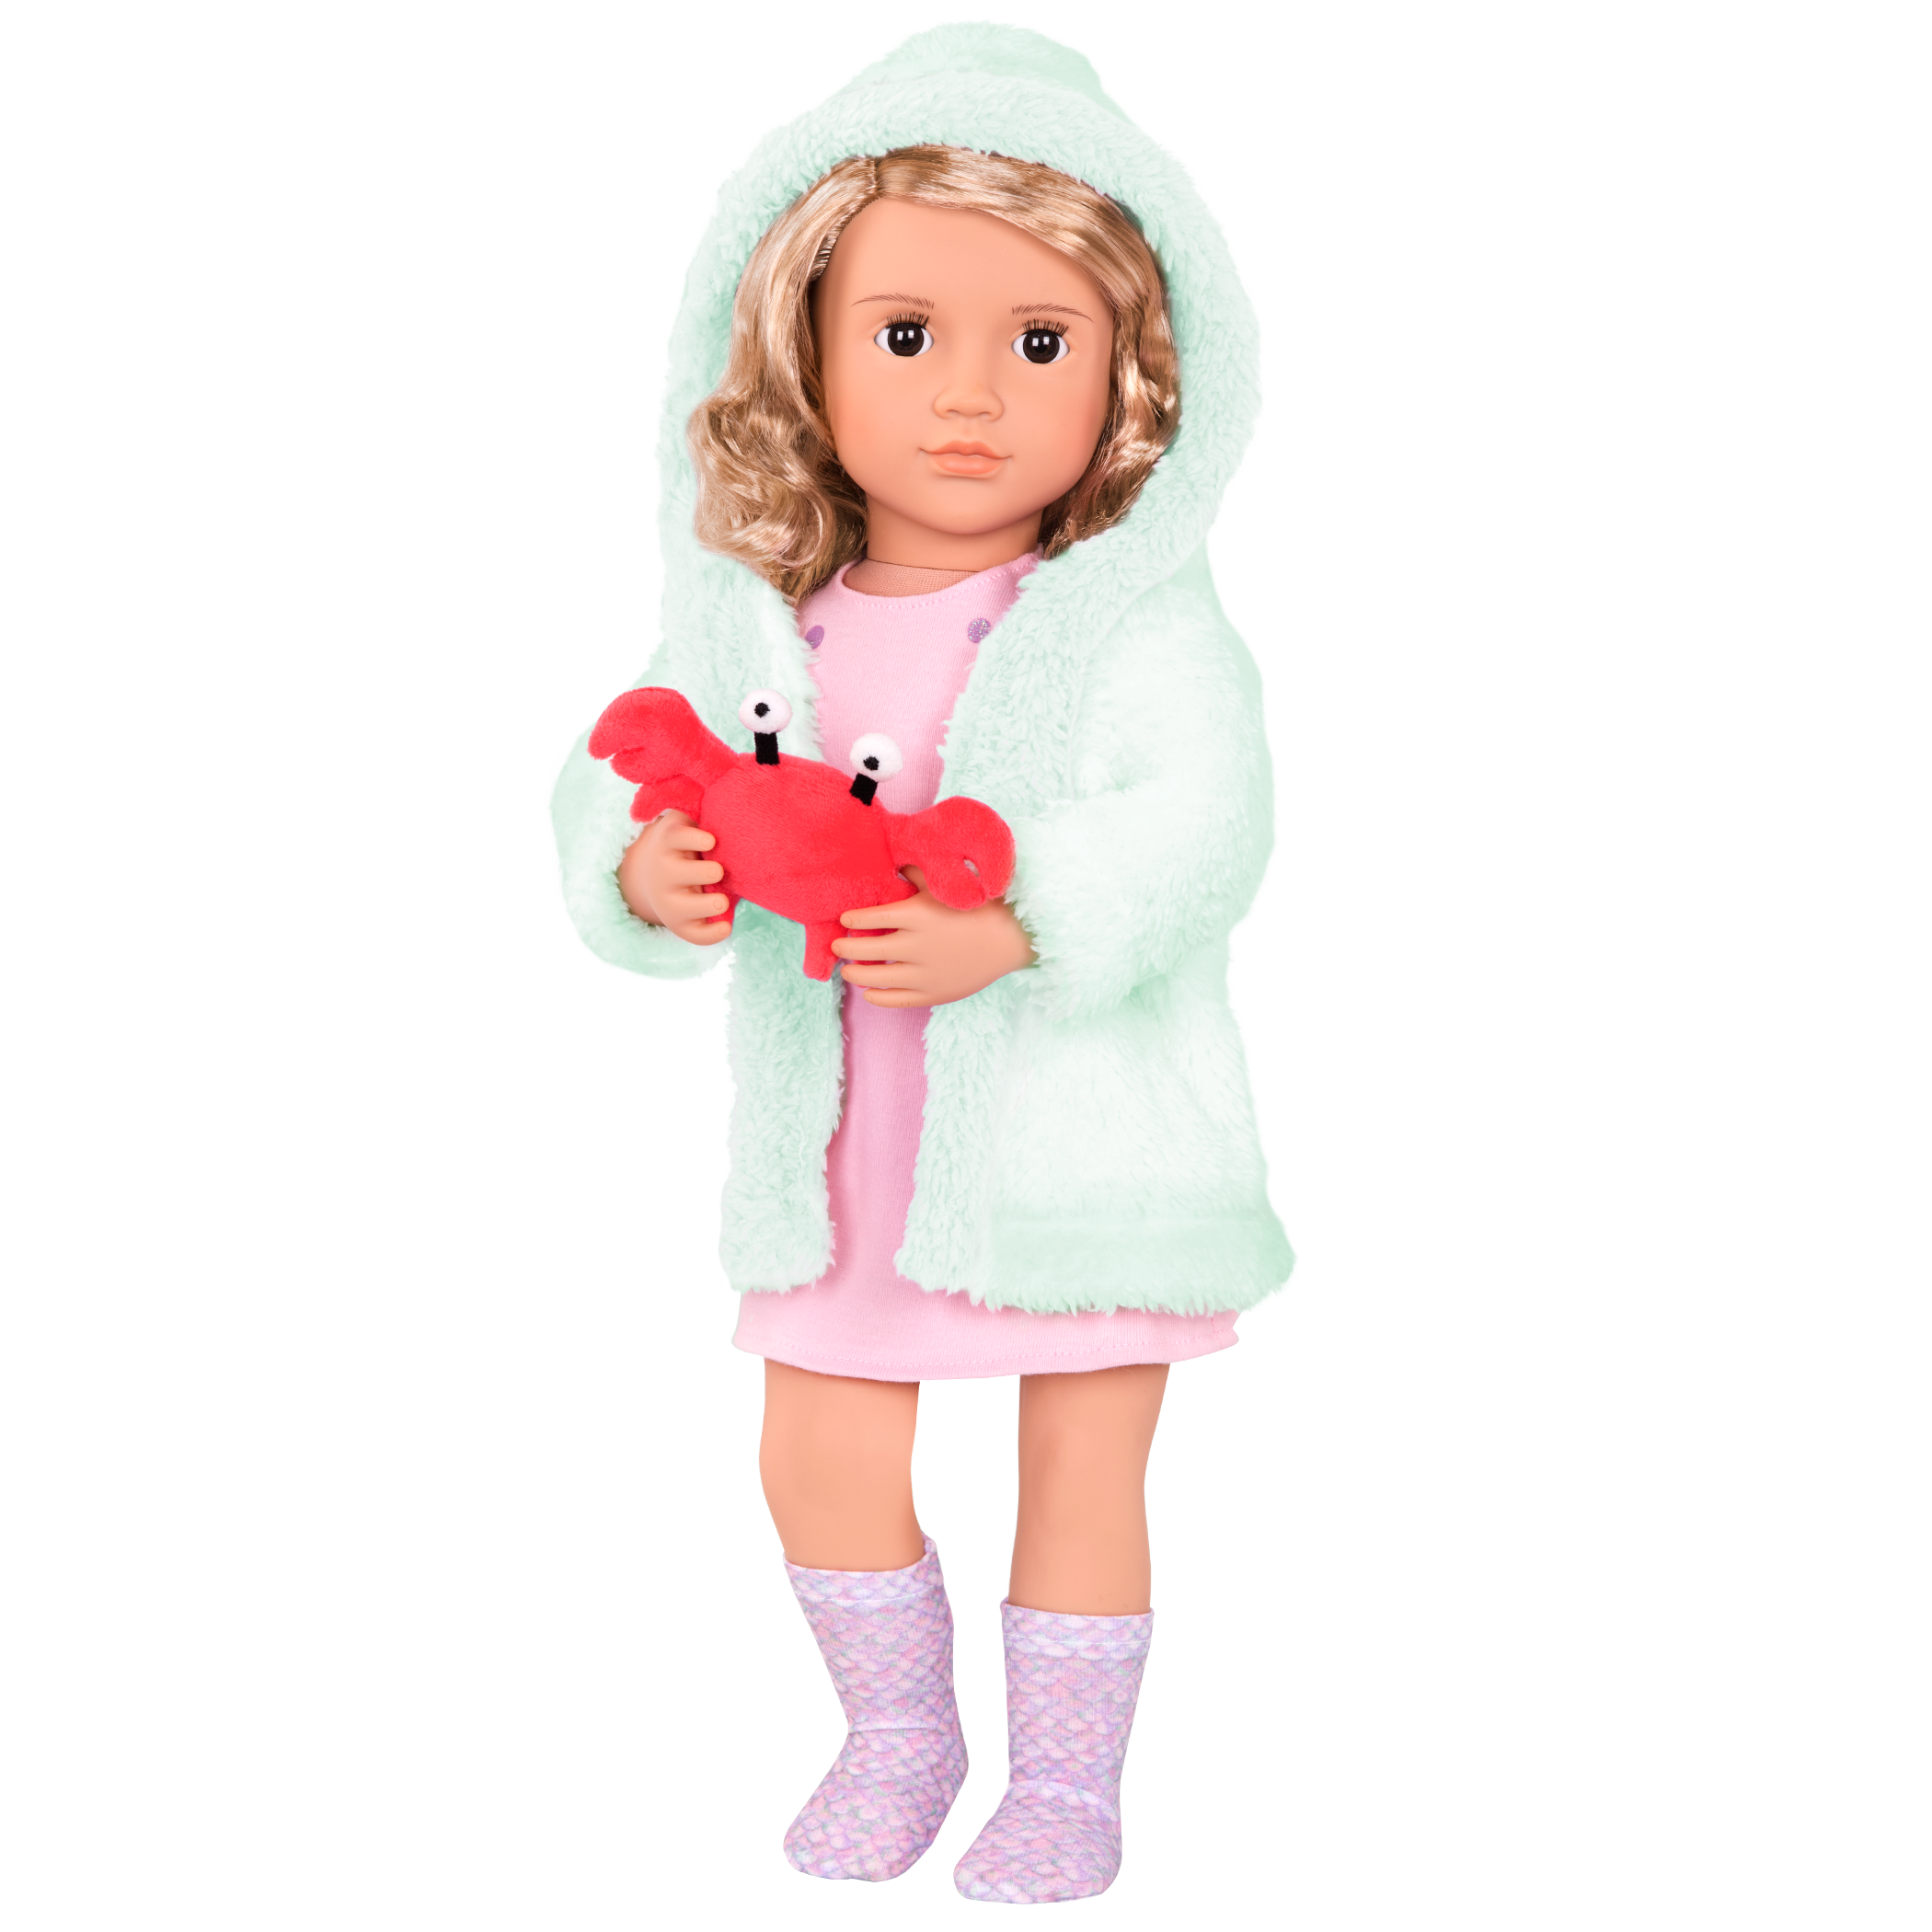 Noelle wearing Seaside Dreaming outfit with hood on